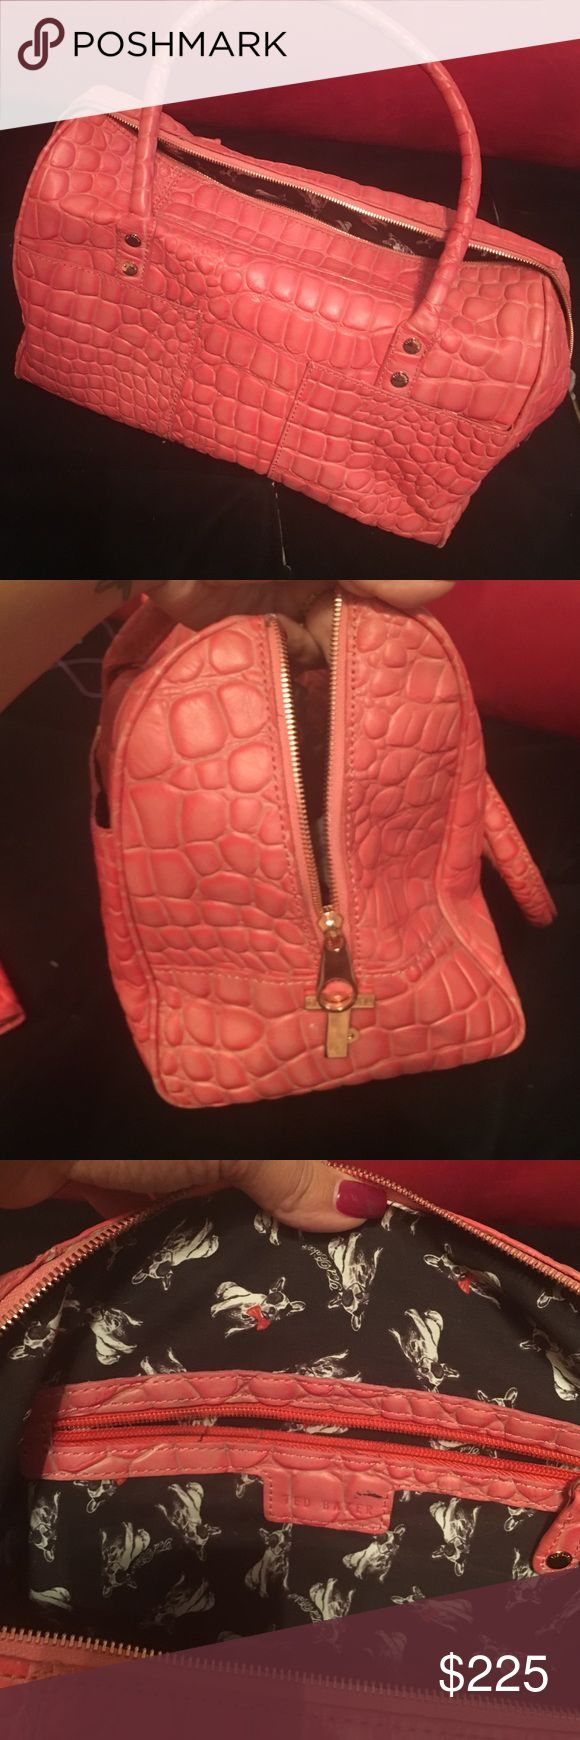 Authentic ted baker handbag Used like new handbag. Worn only a few time. Beautiful peachy color. Authentic ted baker bag, matching wallet also available and sold separately Baker by Ted Baker Bags